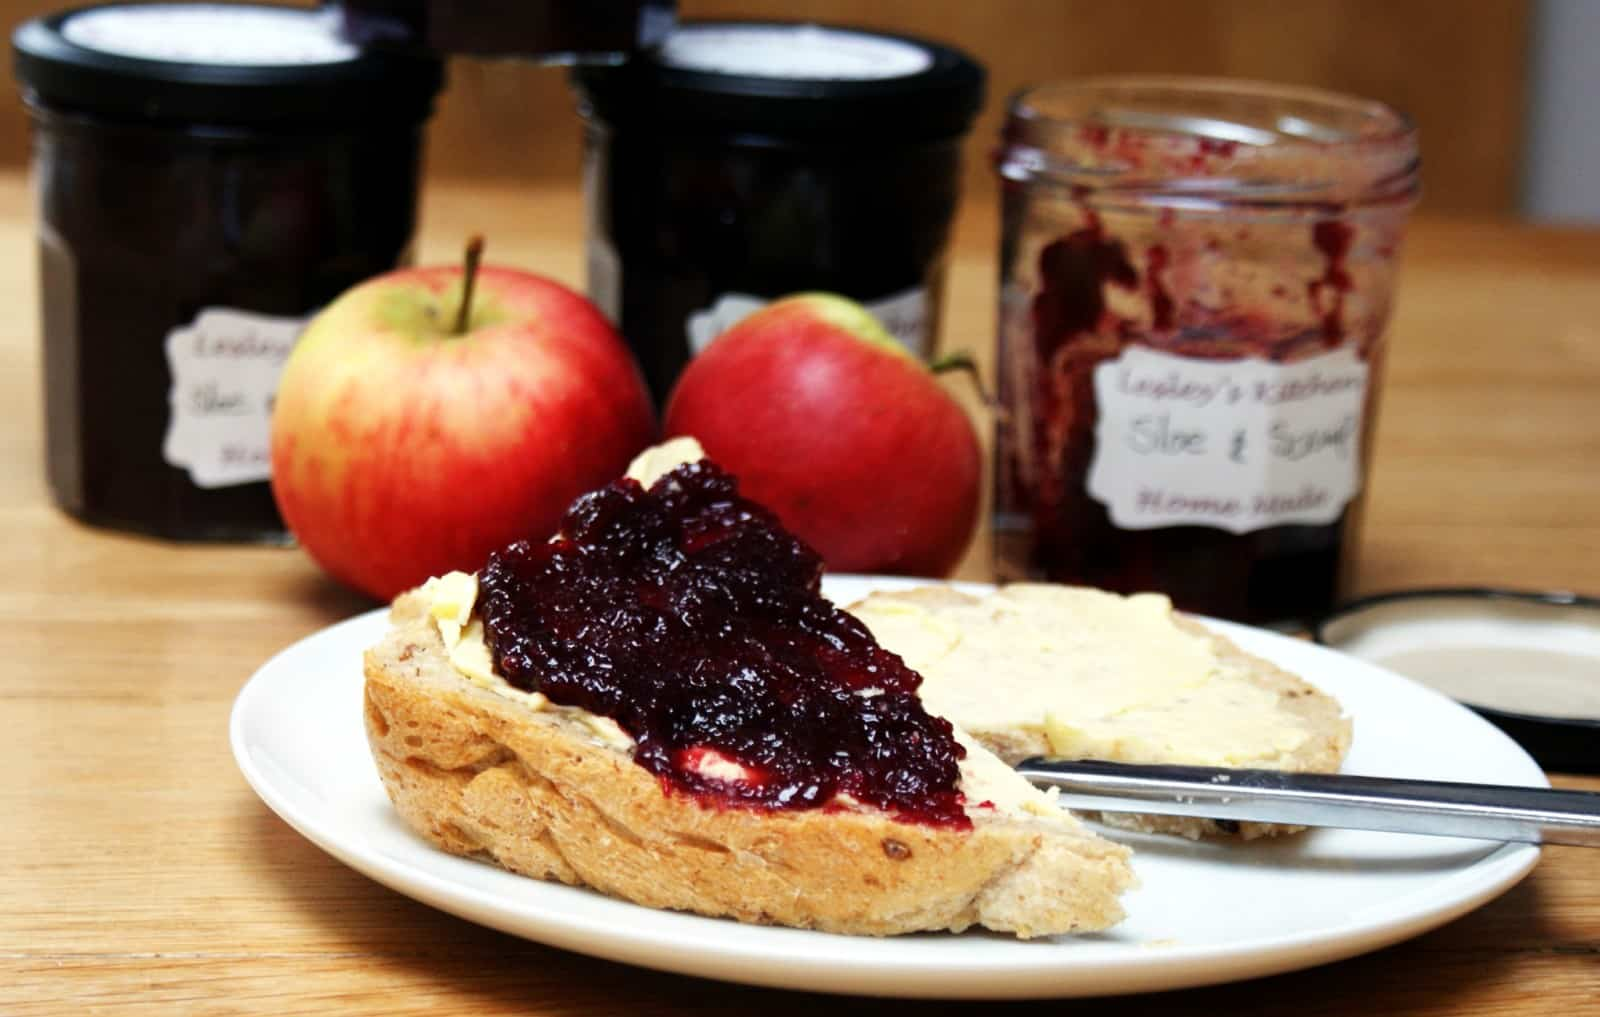 sloe and apple jam